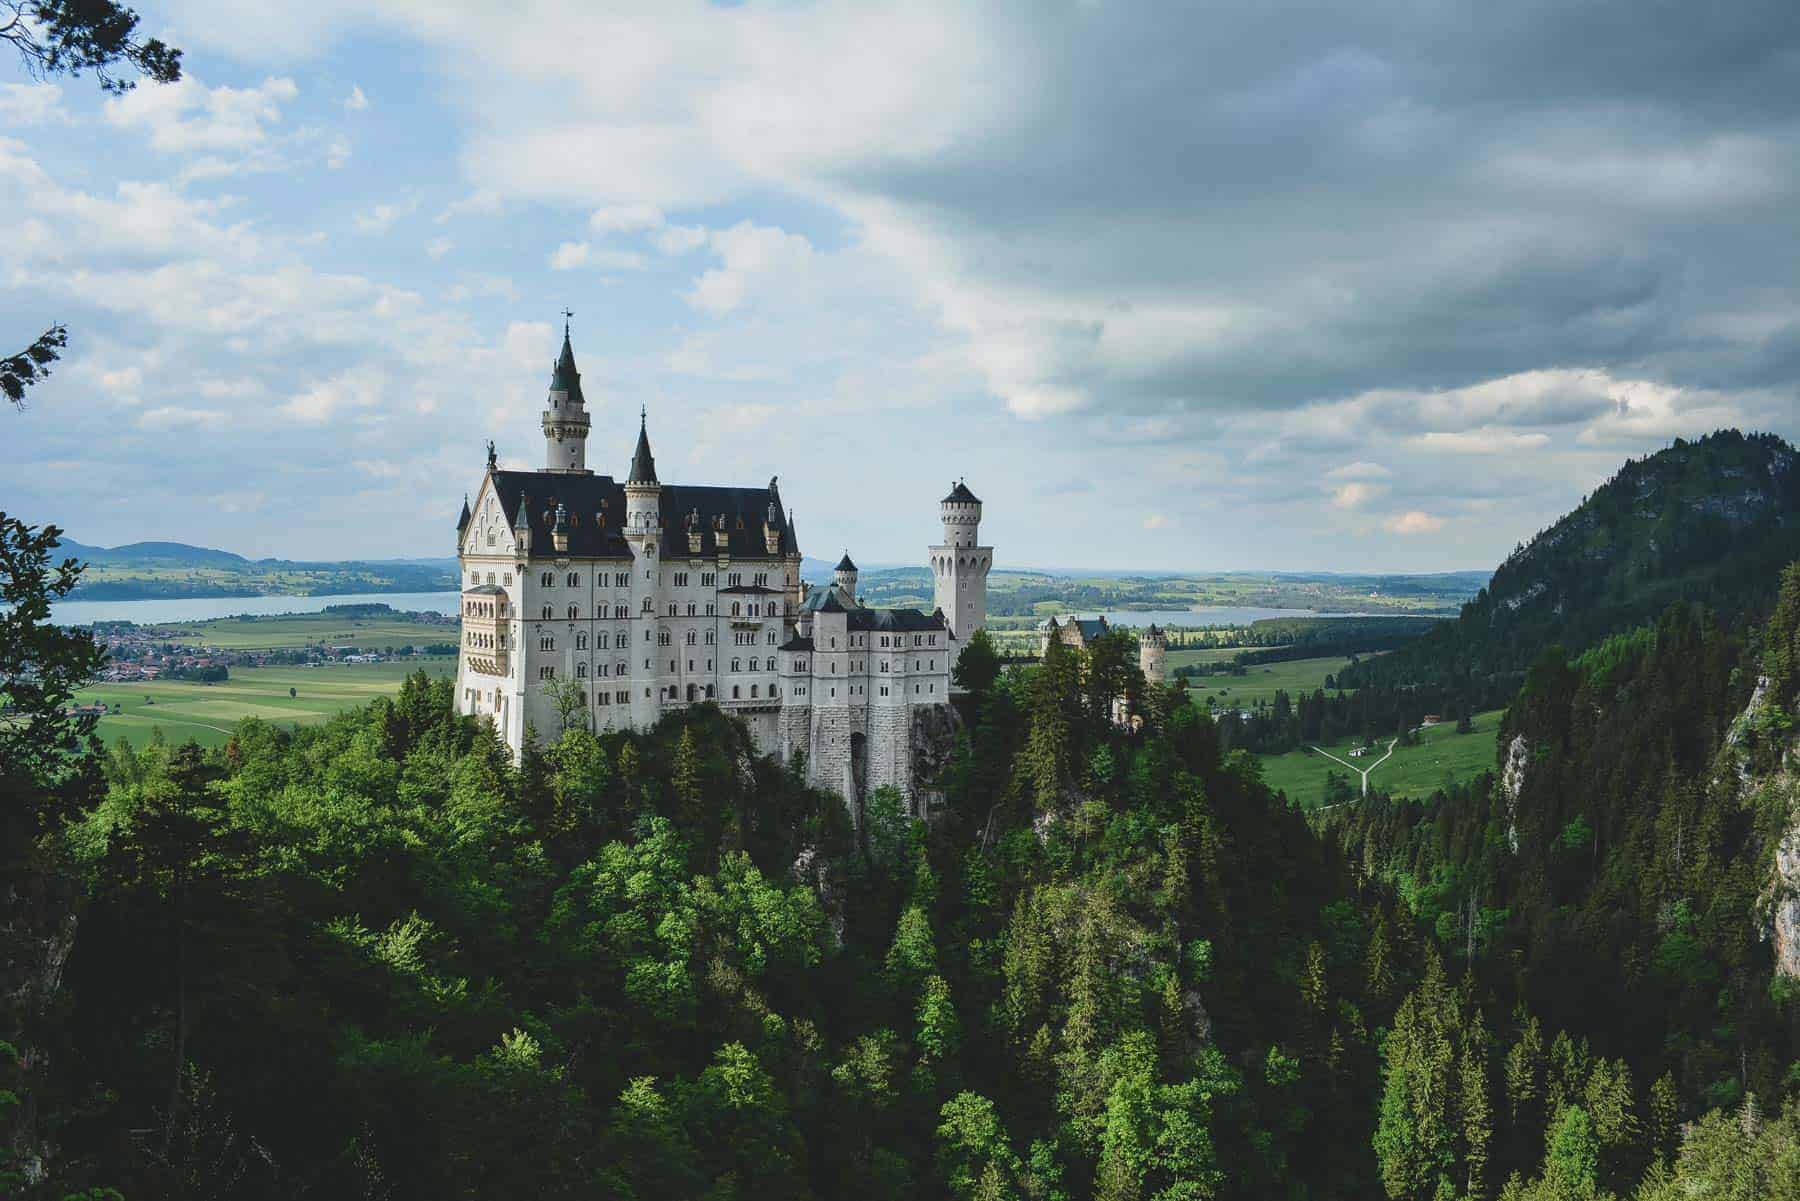 A gothic castle on top of a mountain, in the middle of a green mountain landscape.